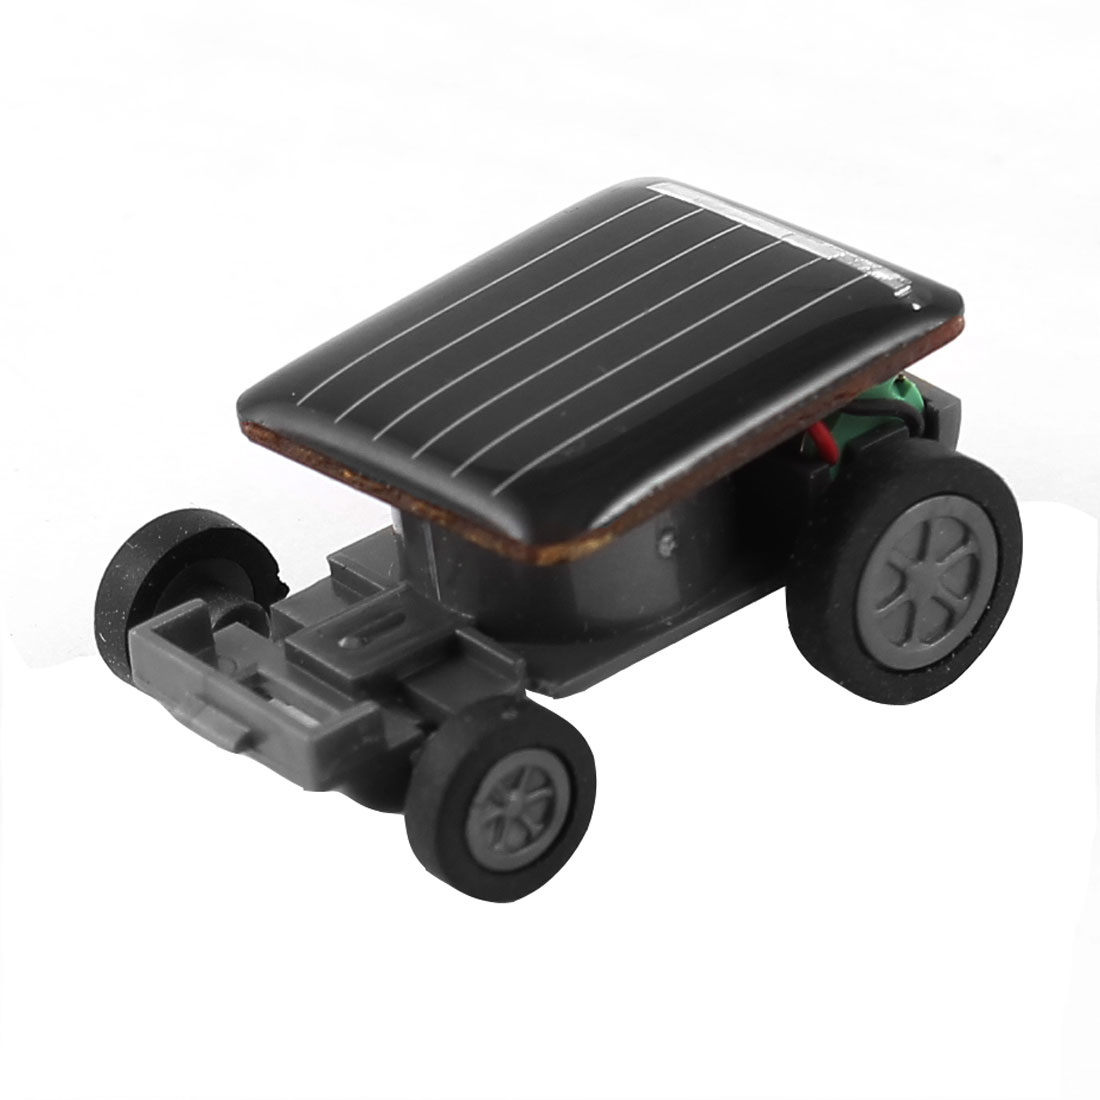 Child Fun Four Wheels Black Plastic Model Solar Energy Car Toy